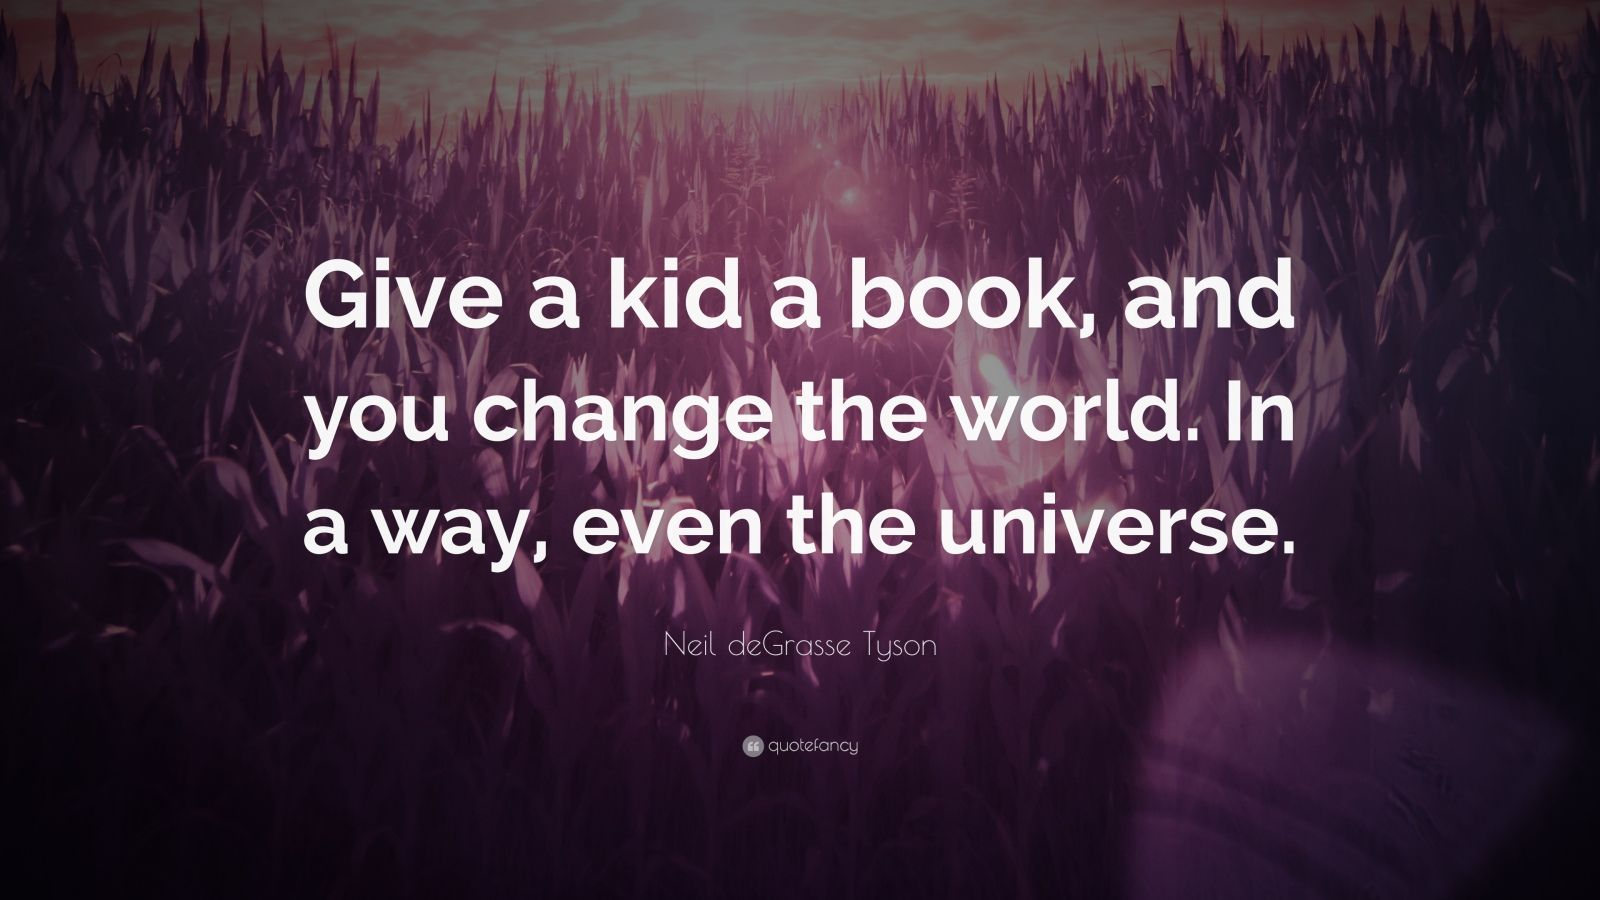 Douglas Adams Quotes Wallpaper Neil Degrasse Tyson Quote Give A Kid A Book And You